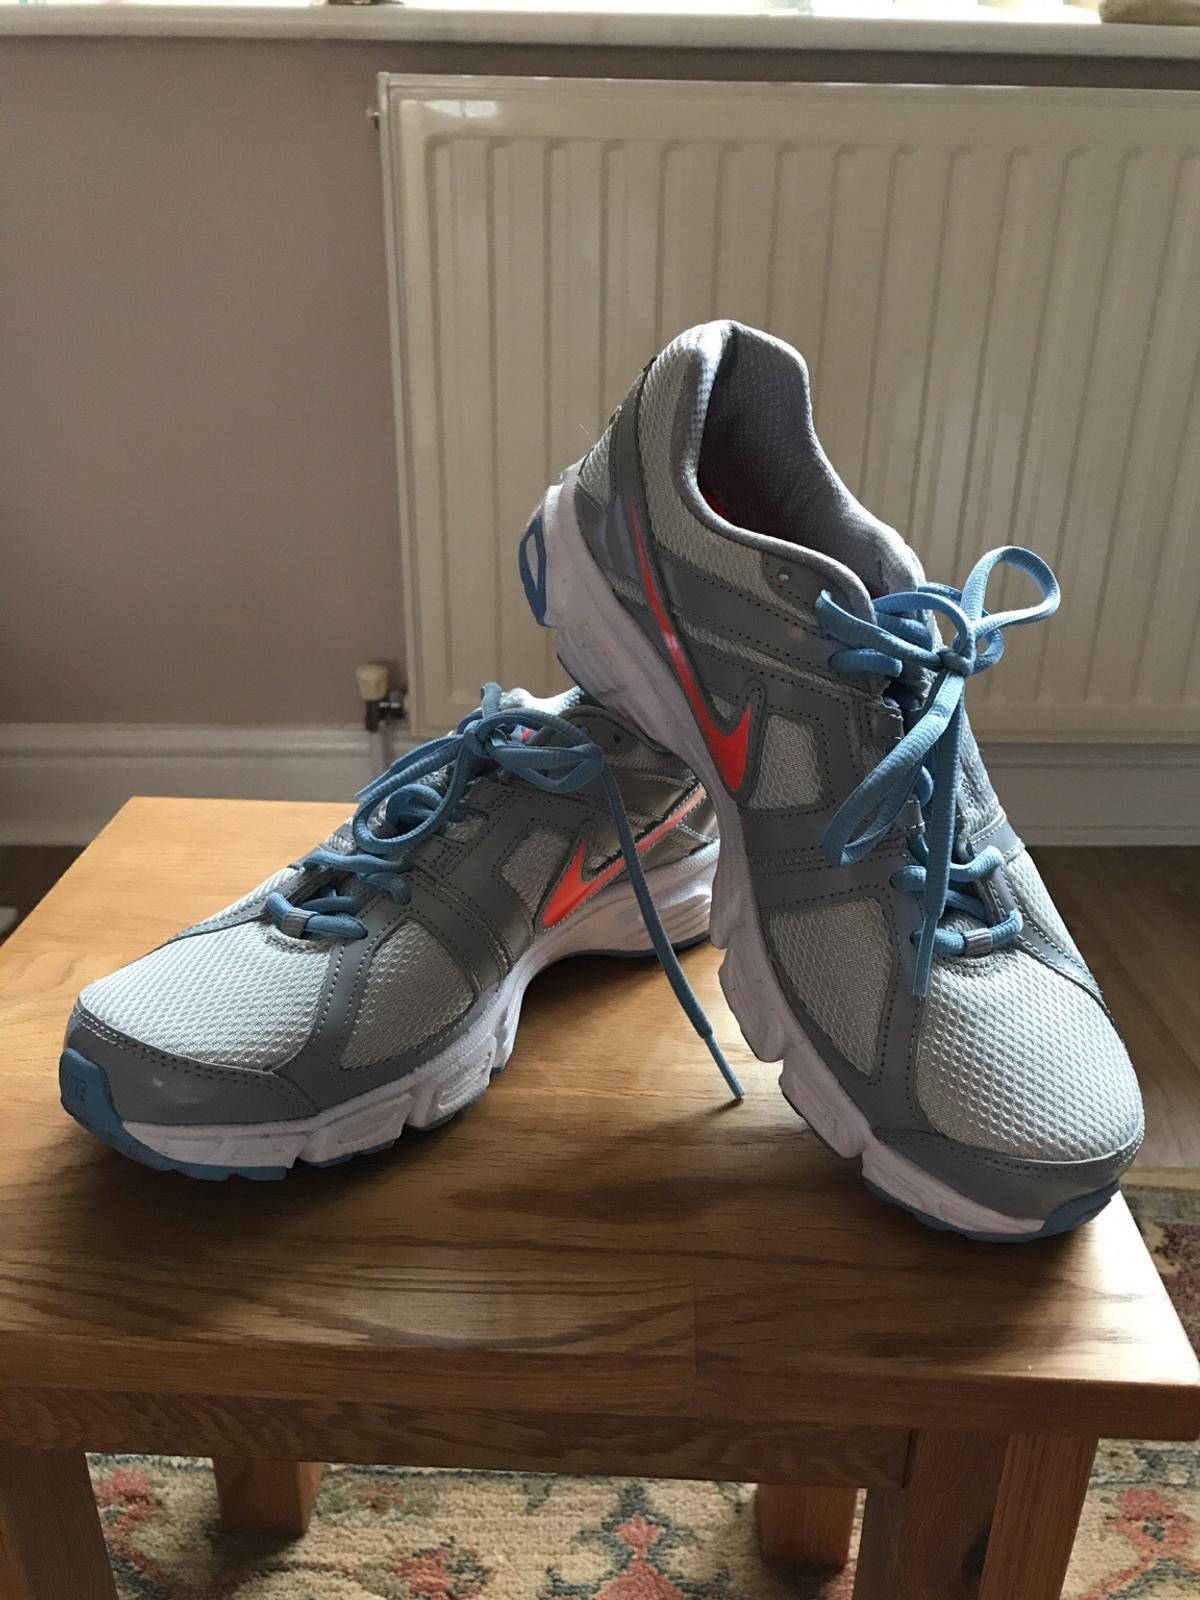 ecc8f0782b55 Nike ladies running trainer size 7 in Chelmsford for £15.00 for sale ...